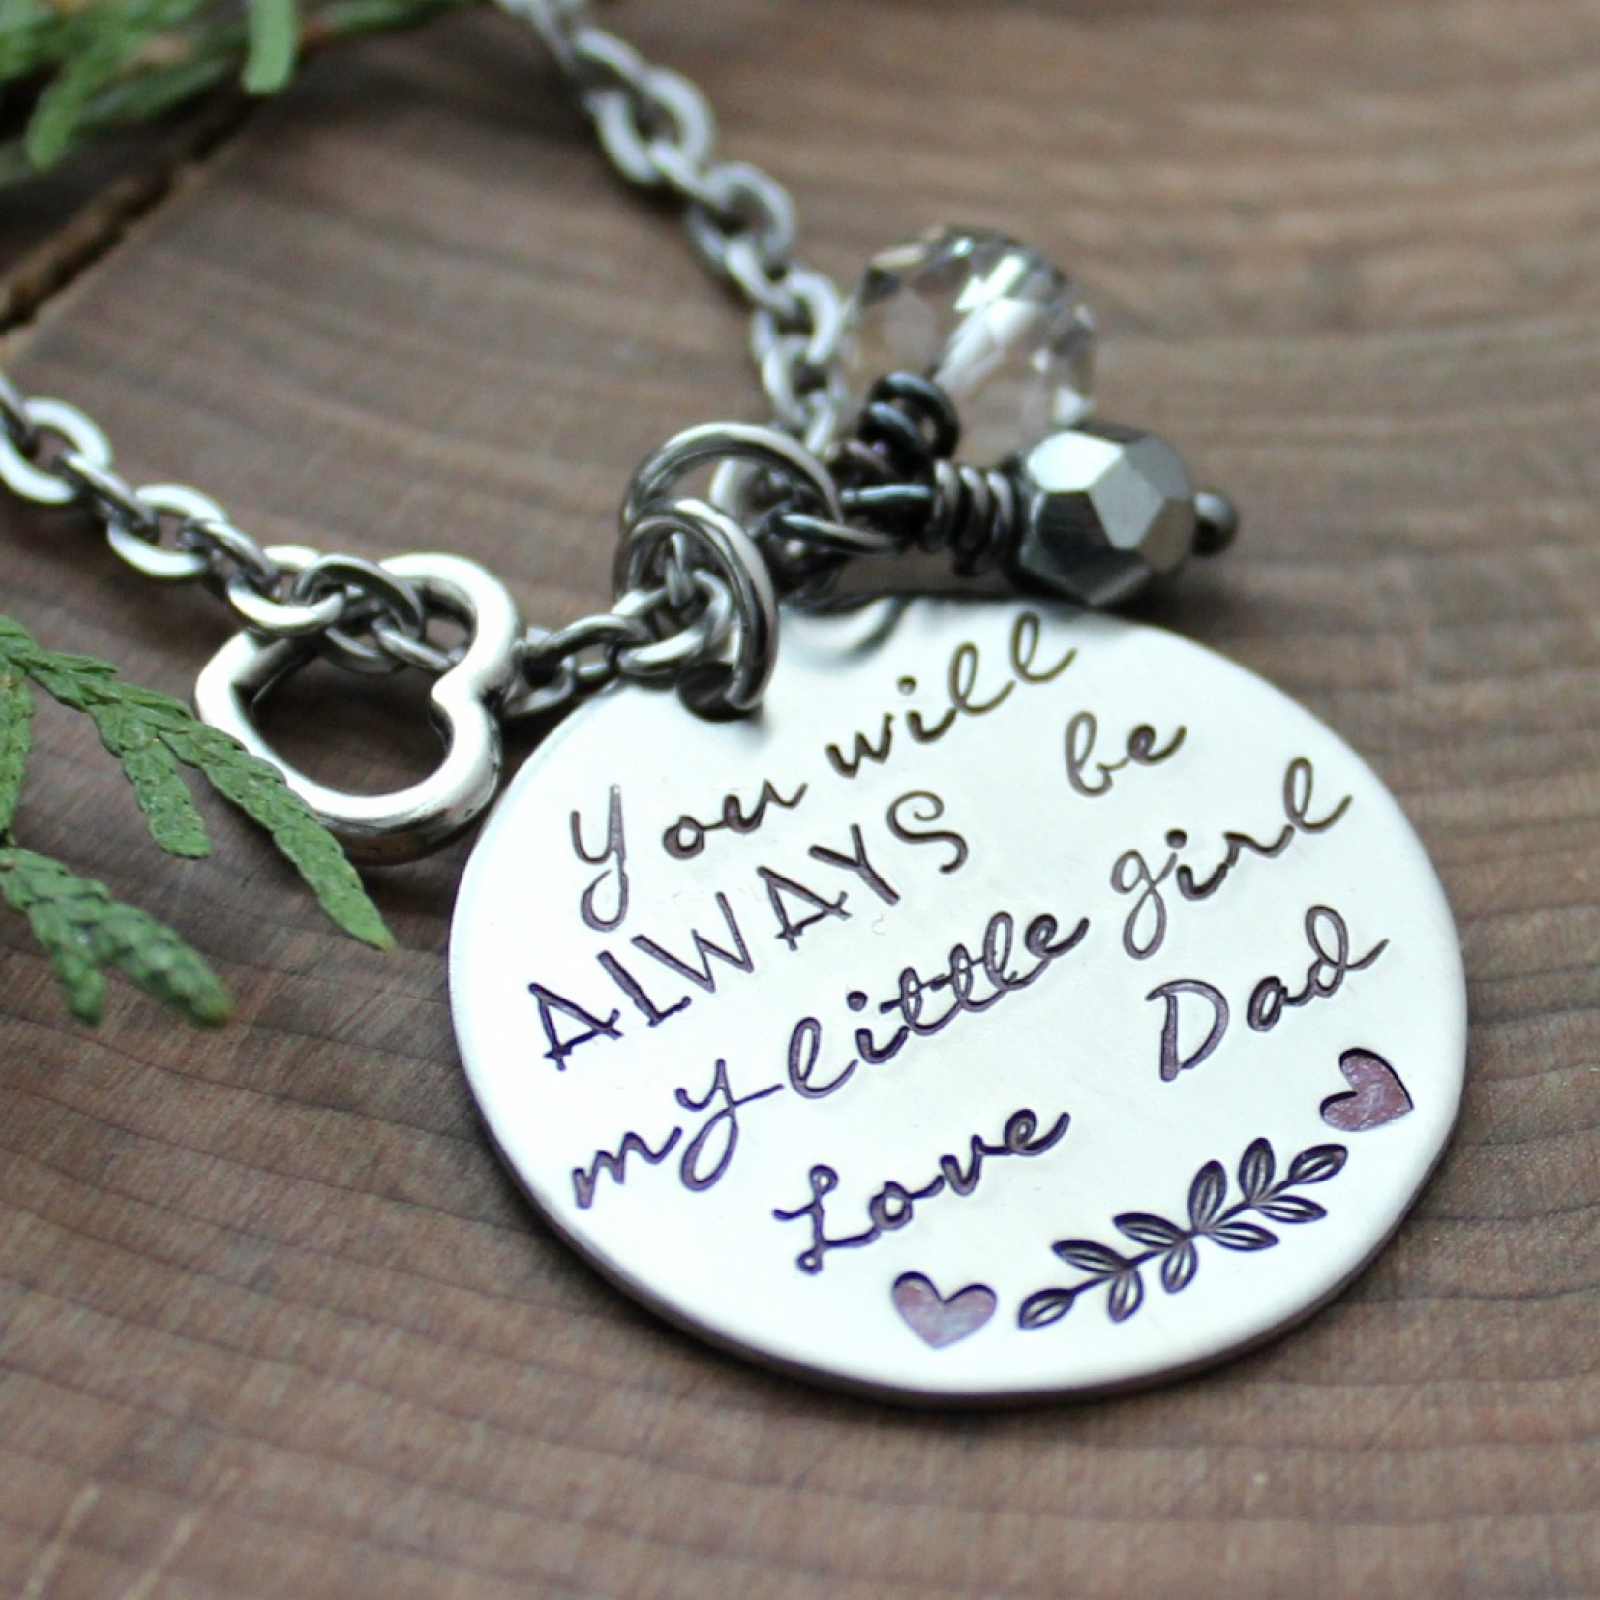 Gift For Daughter Necklace From Dad Or Mom, You'll Always Be My Little Girl  Necklace, Quote Jewelery, Quote Necklace, Gift For Daughter,